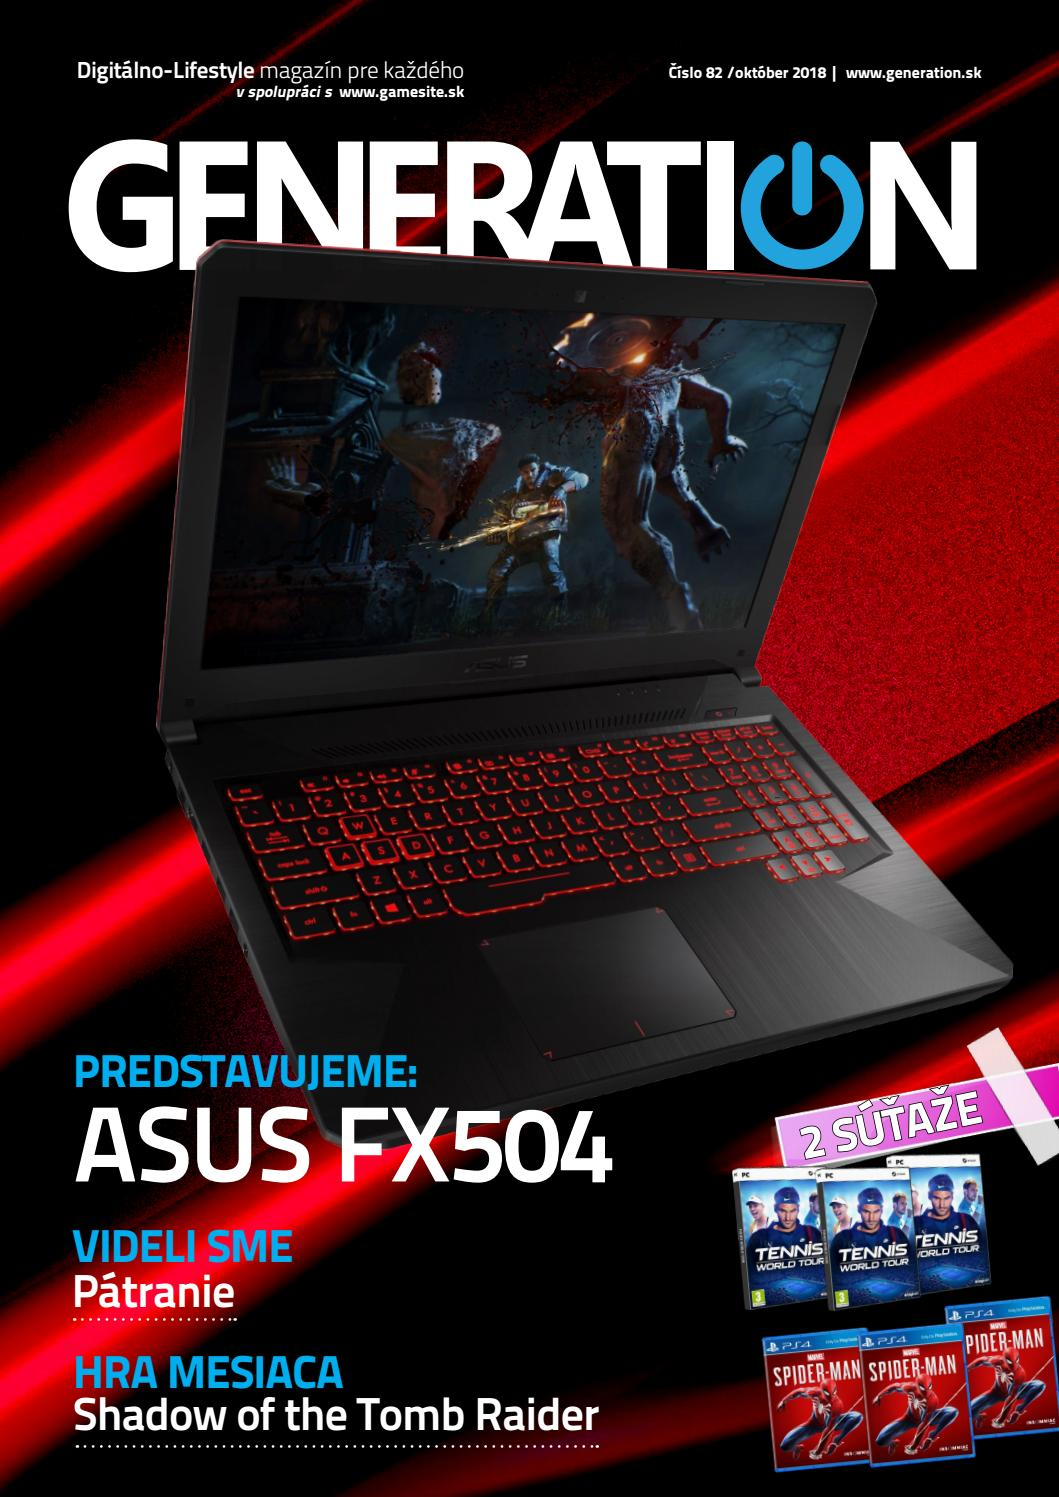 Generation magazín  082 by Generation magazine - issuu 3a36bbc9ac4